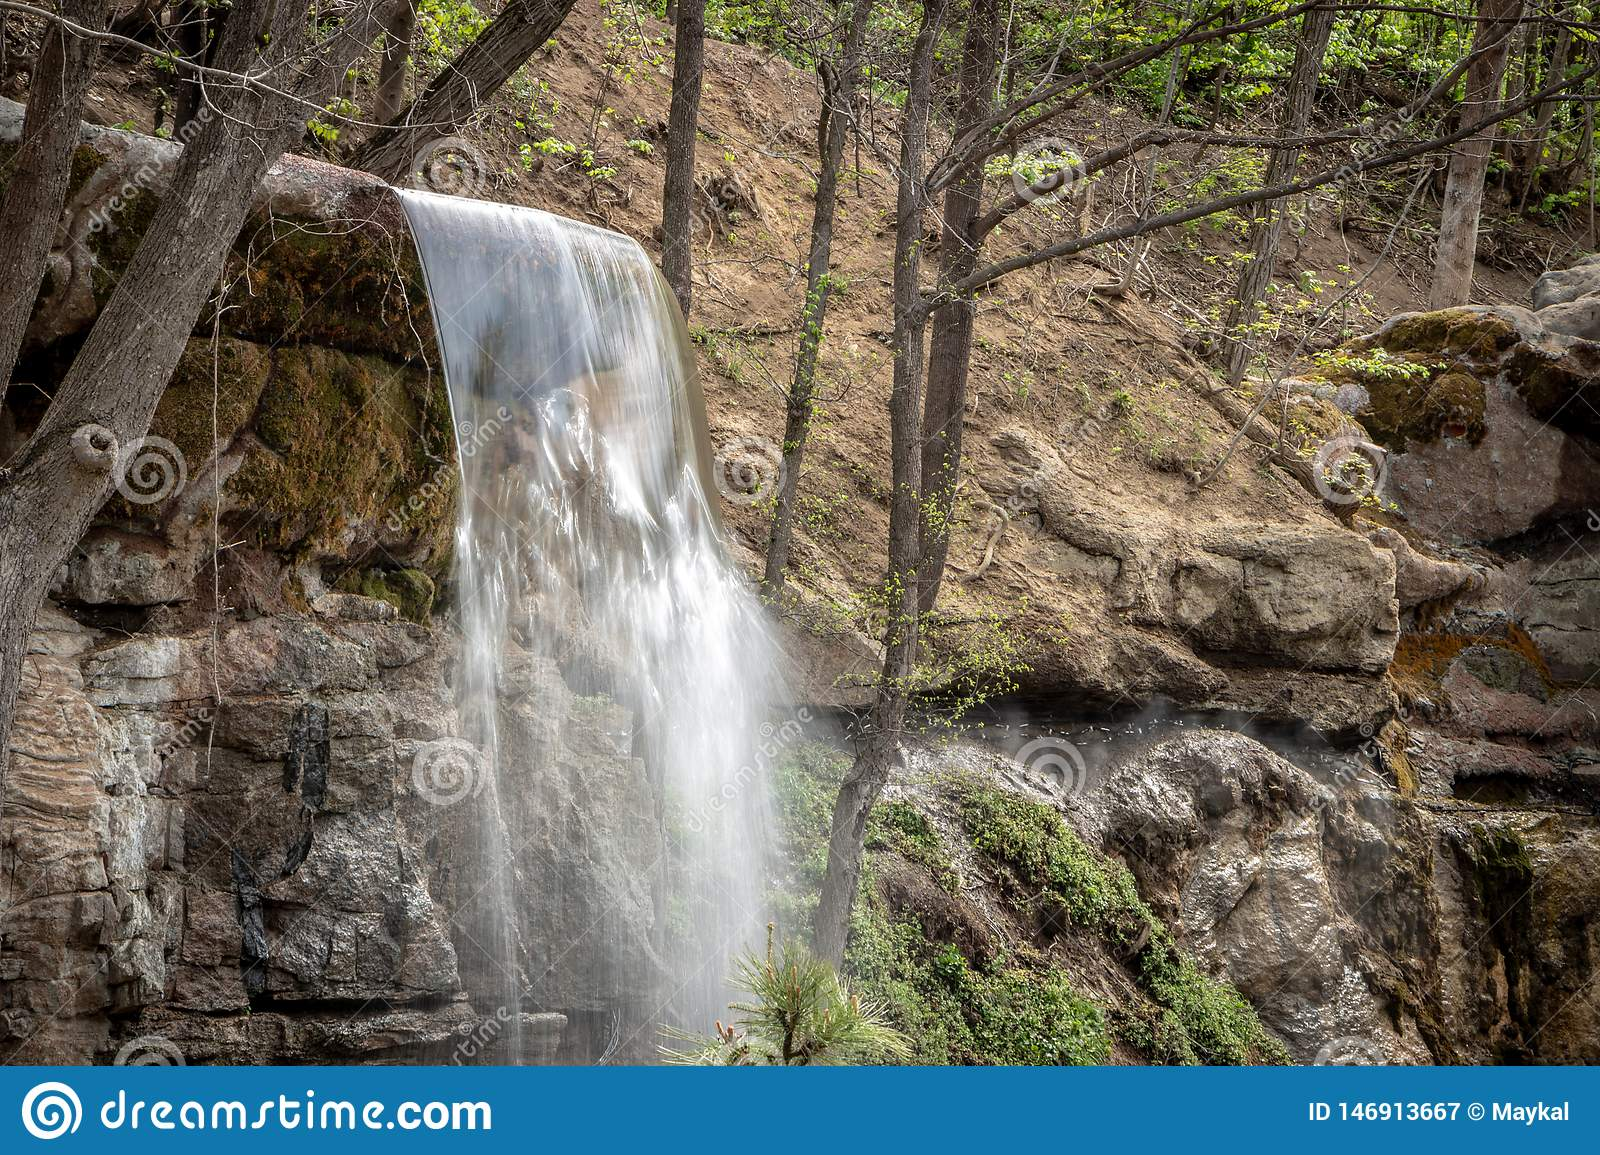 New waterfall in Sophia old dendropark, in the city of Uman, Ukraine